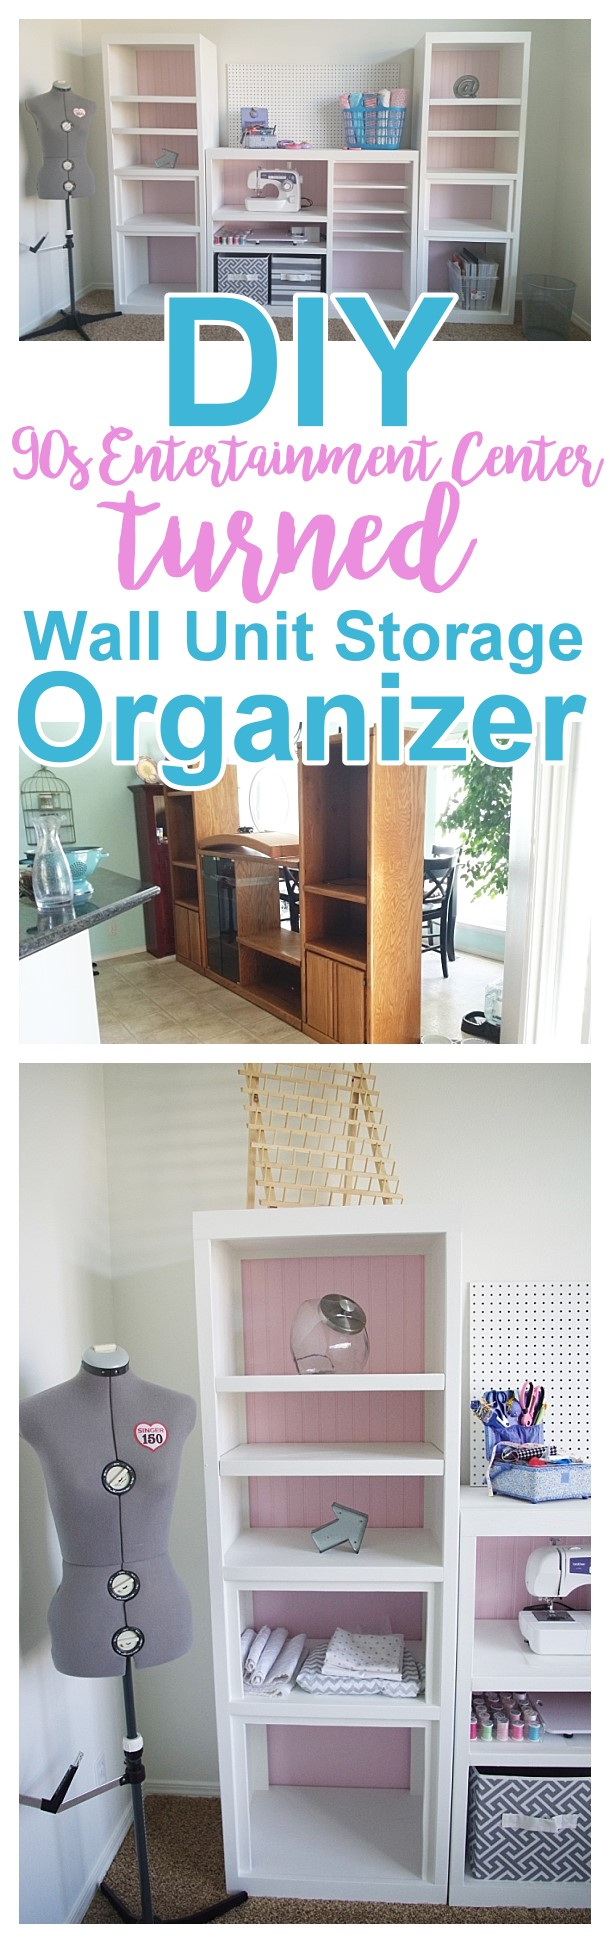 Diy craft room wall storage organizer unit furniture makeover diy 90s ugly oak entertainment center turned pretty craft storage organizer wall solutioingenieria Gallery